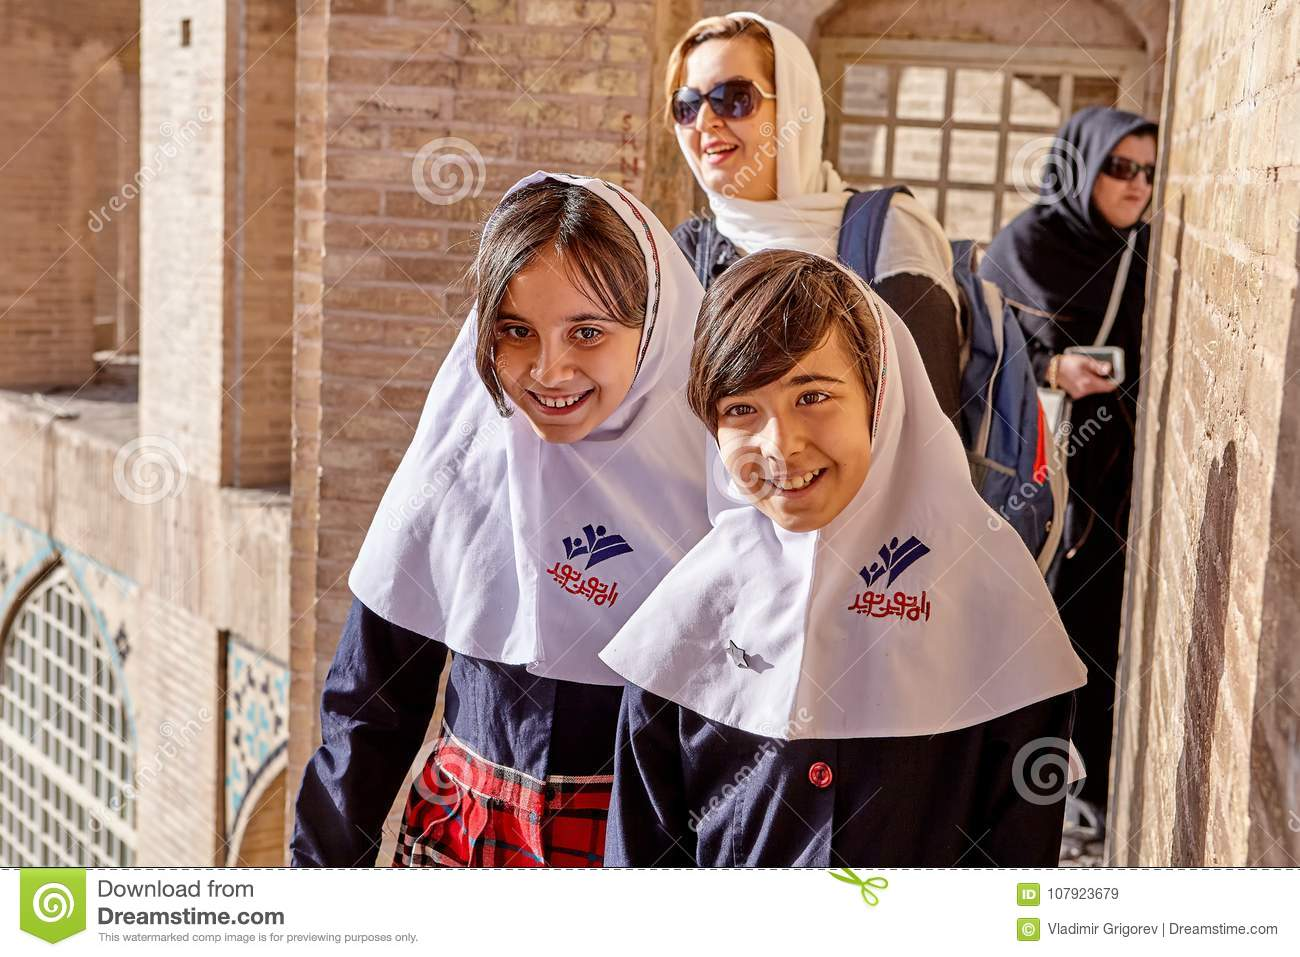 Iranian pic young girls poran nomber accept. The